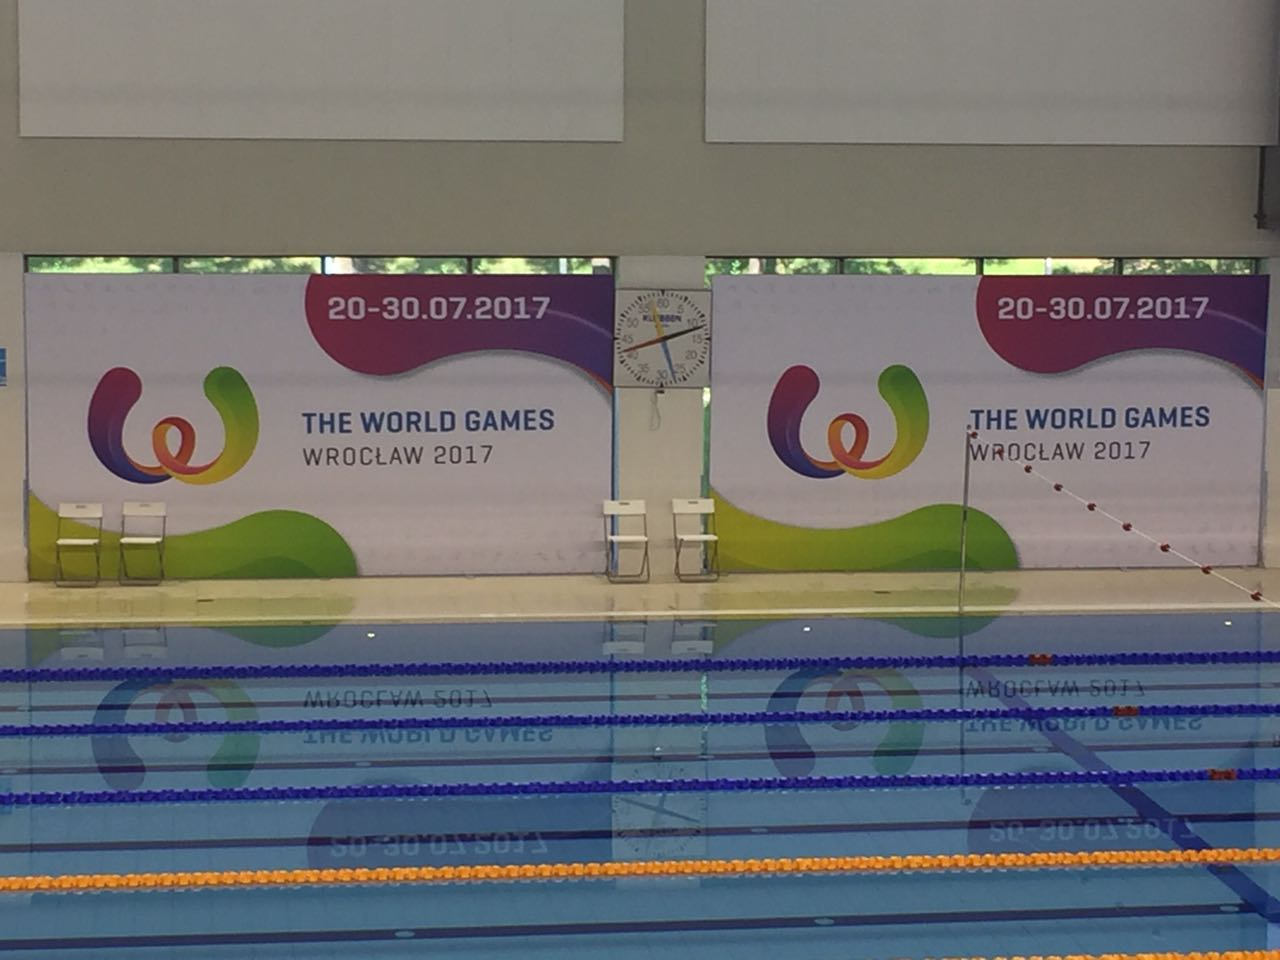 World Games Wroclaw 2017